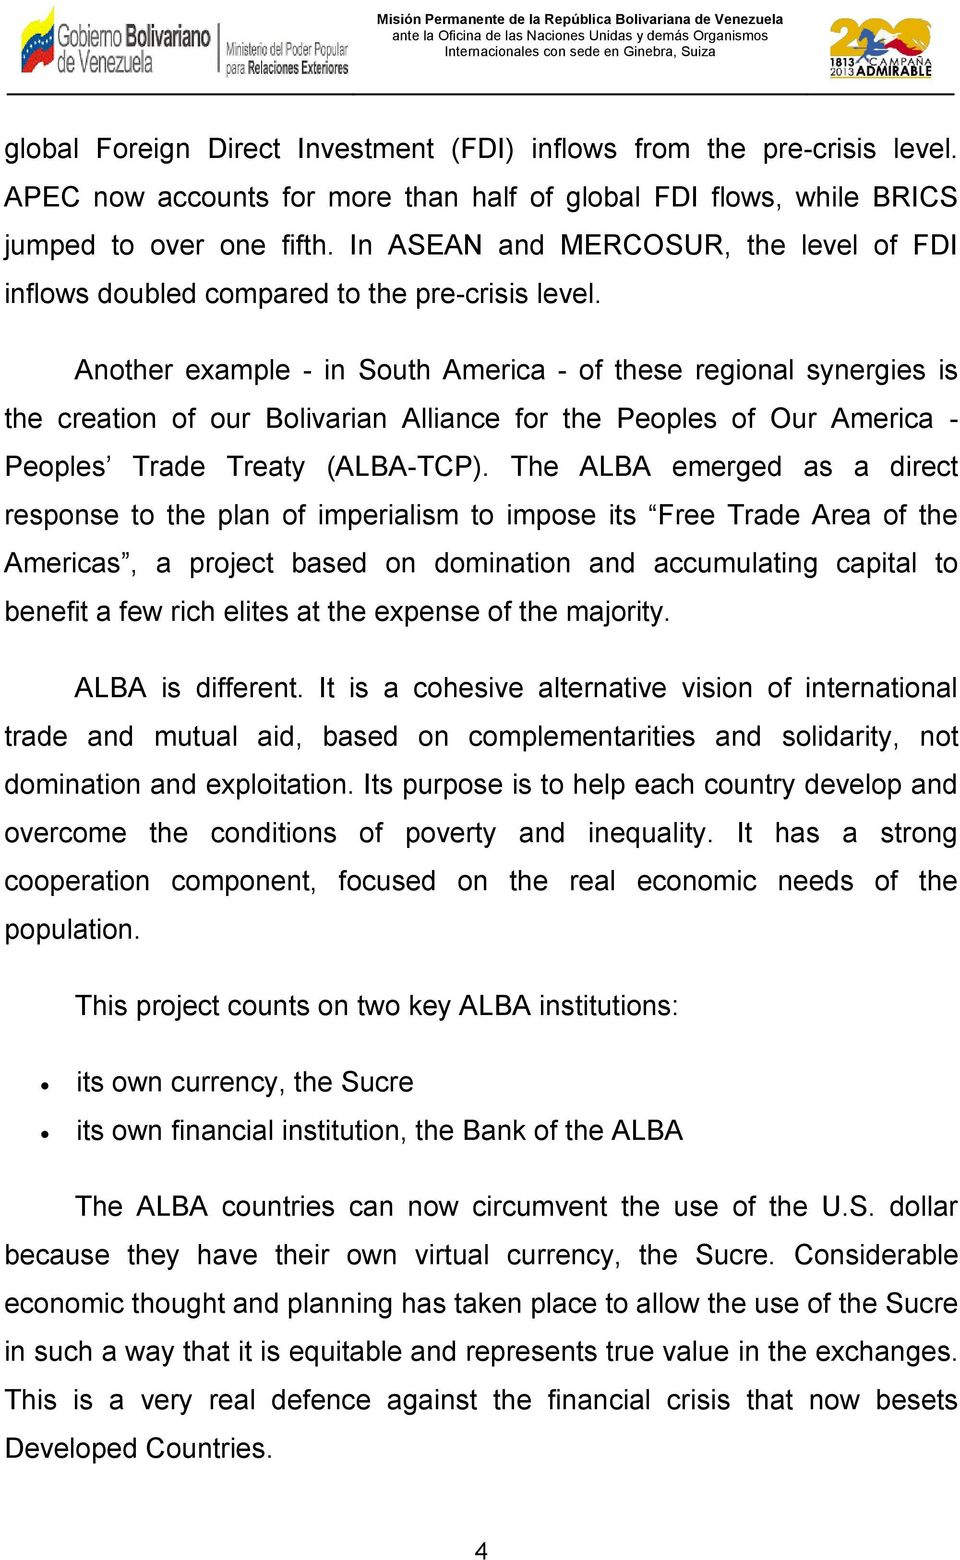 Another example - in South America - of these regional synergies is the creation of our Bolivarian Alliance for the Peoples of Our America - Peoples Trade Treaty (ALBA-TCP).